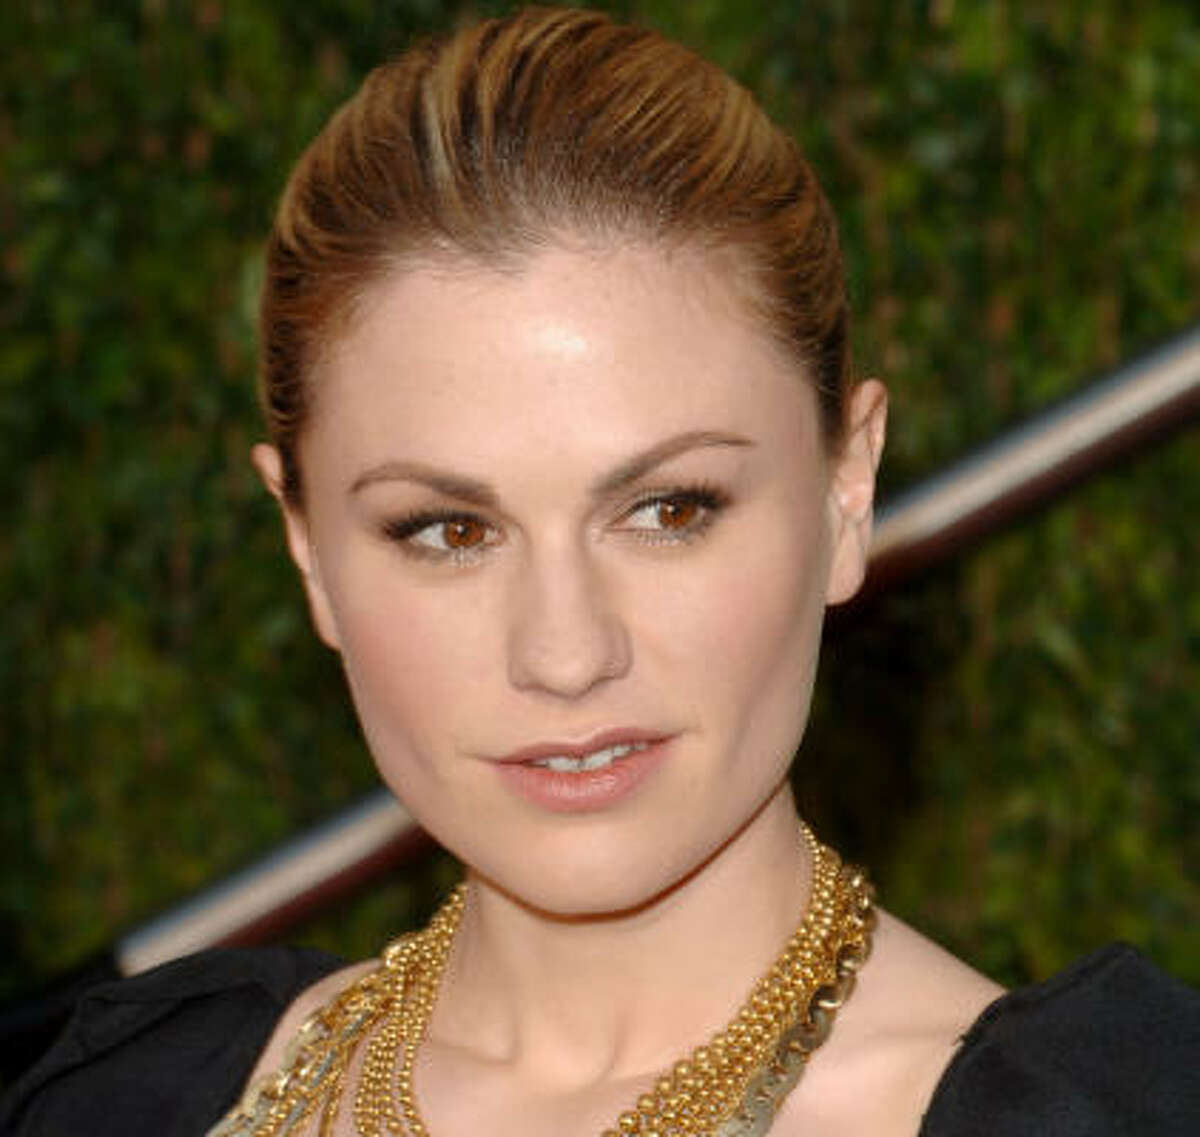 """'Out' gay celebrities Keep clicking to learn more about this Oscar winner and others. Anna Paquin : In an ad campaign for Cyndi Lauper's True Colors Fund, which fights for the rights of the GLBT community, Paquin declares, """"I'm Anna Paquin. I'm bisexual, and I give a d*mn."""""""